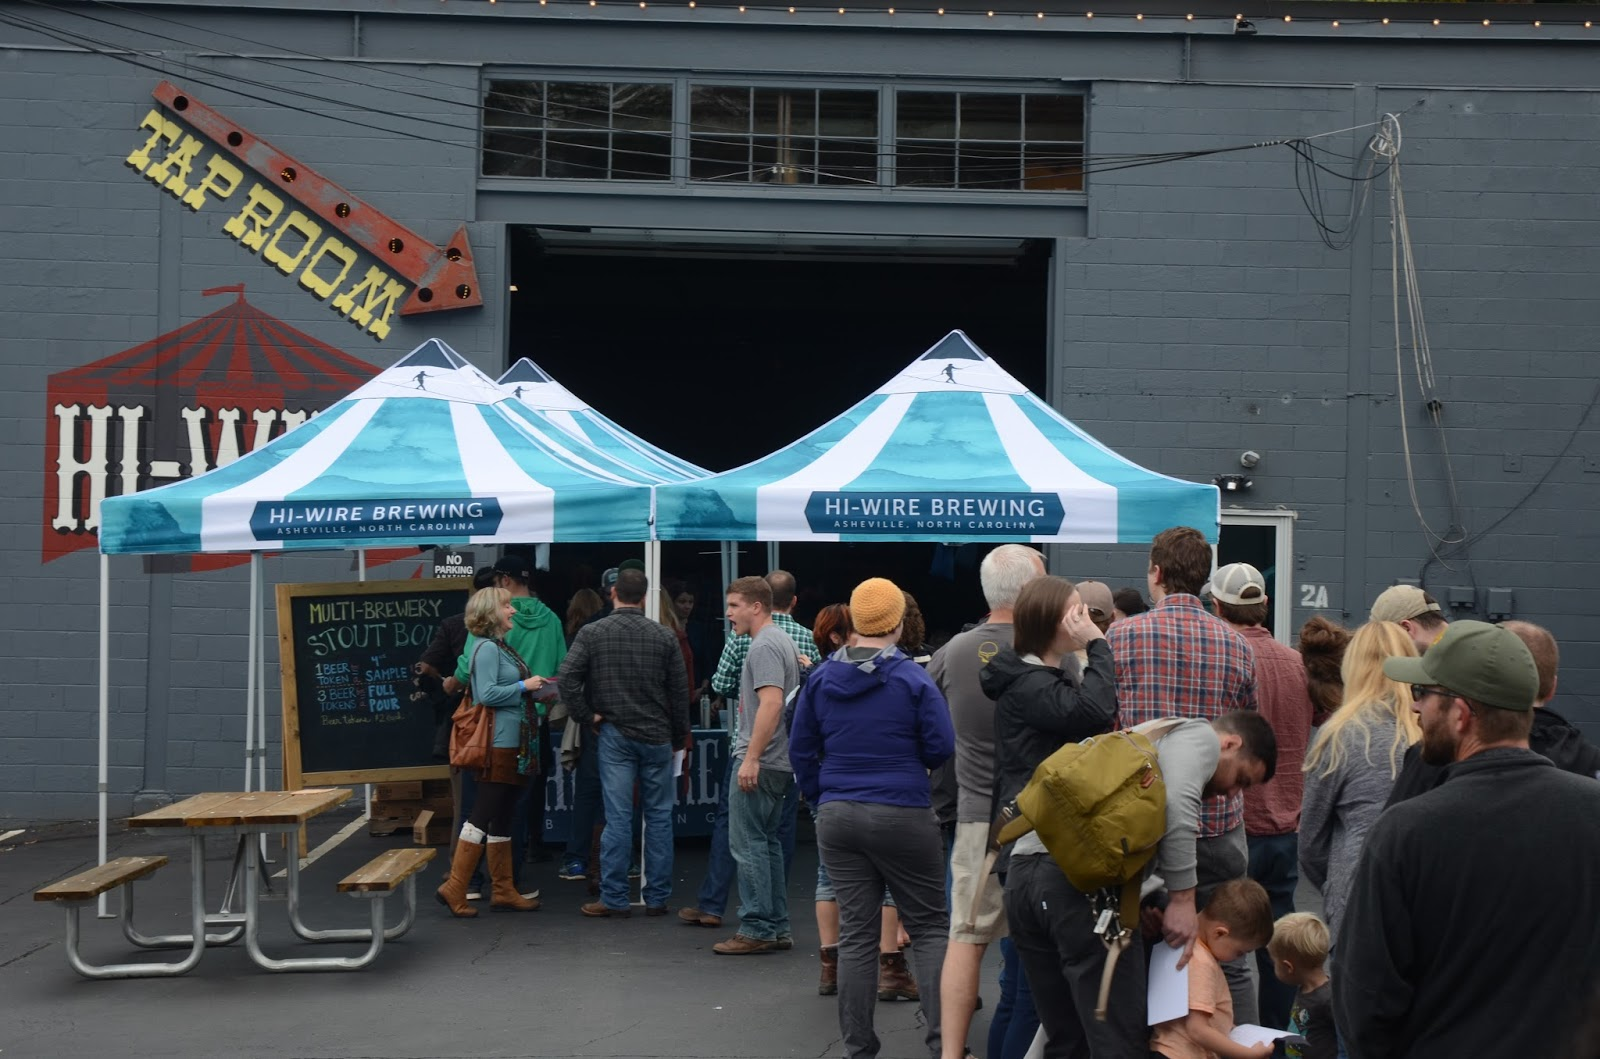 Sweetwater purchases pyramid brewing equipment plans to build second - Rain Held Off Most Of The Day